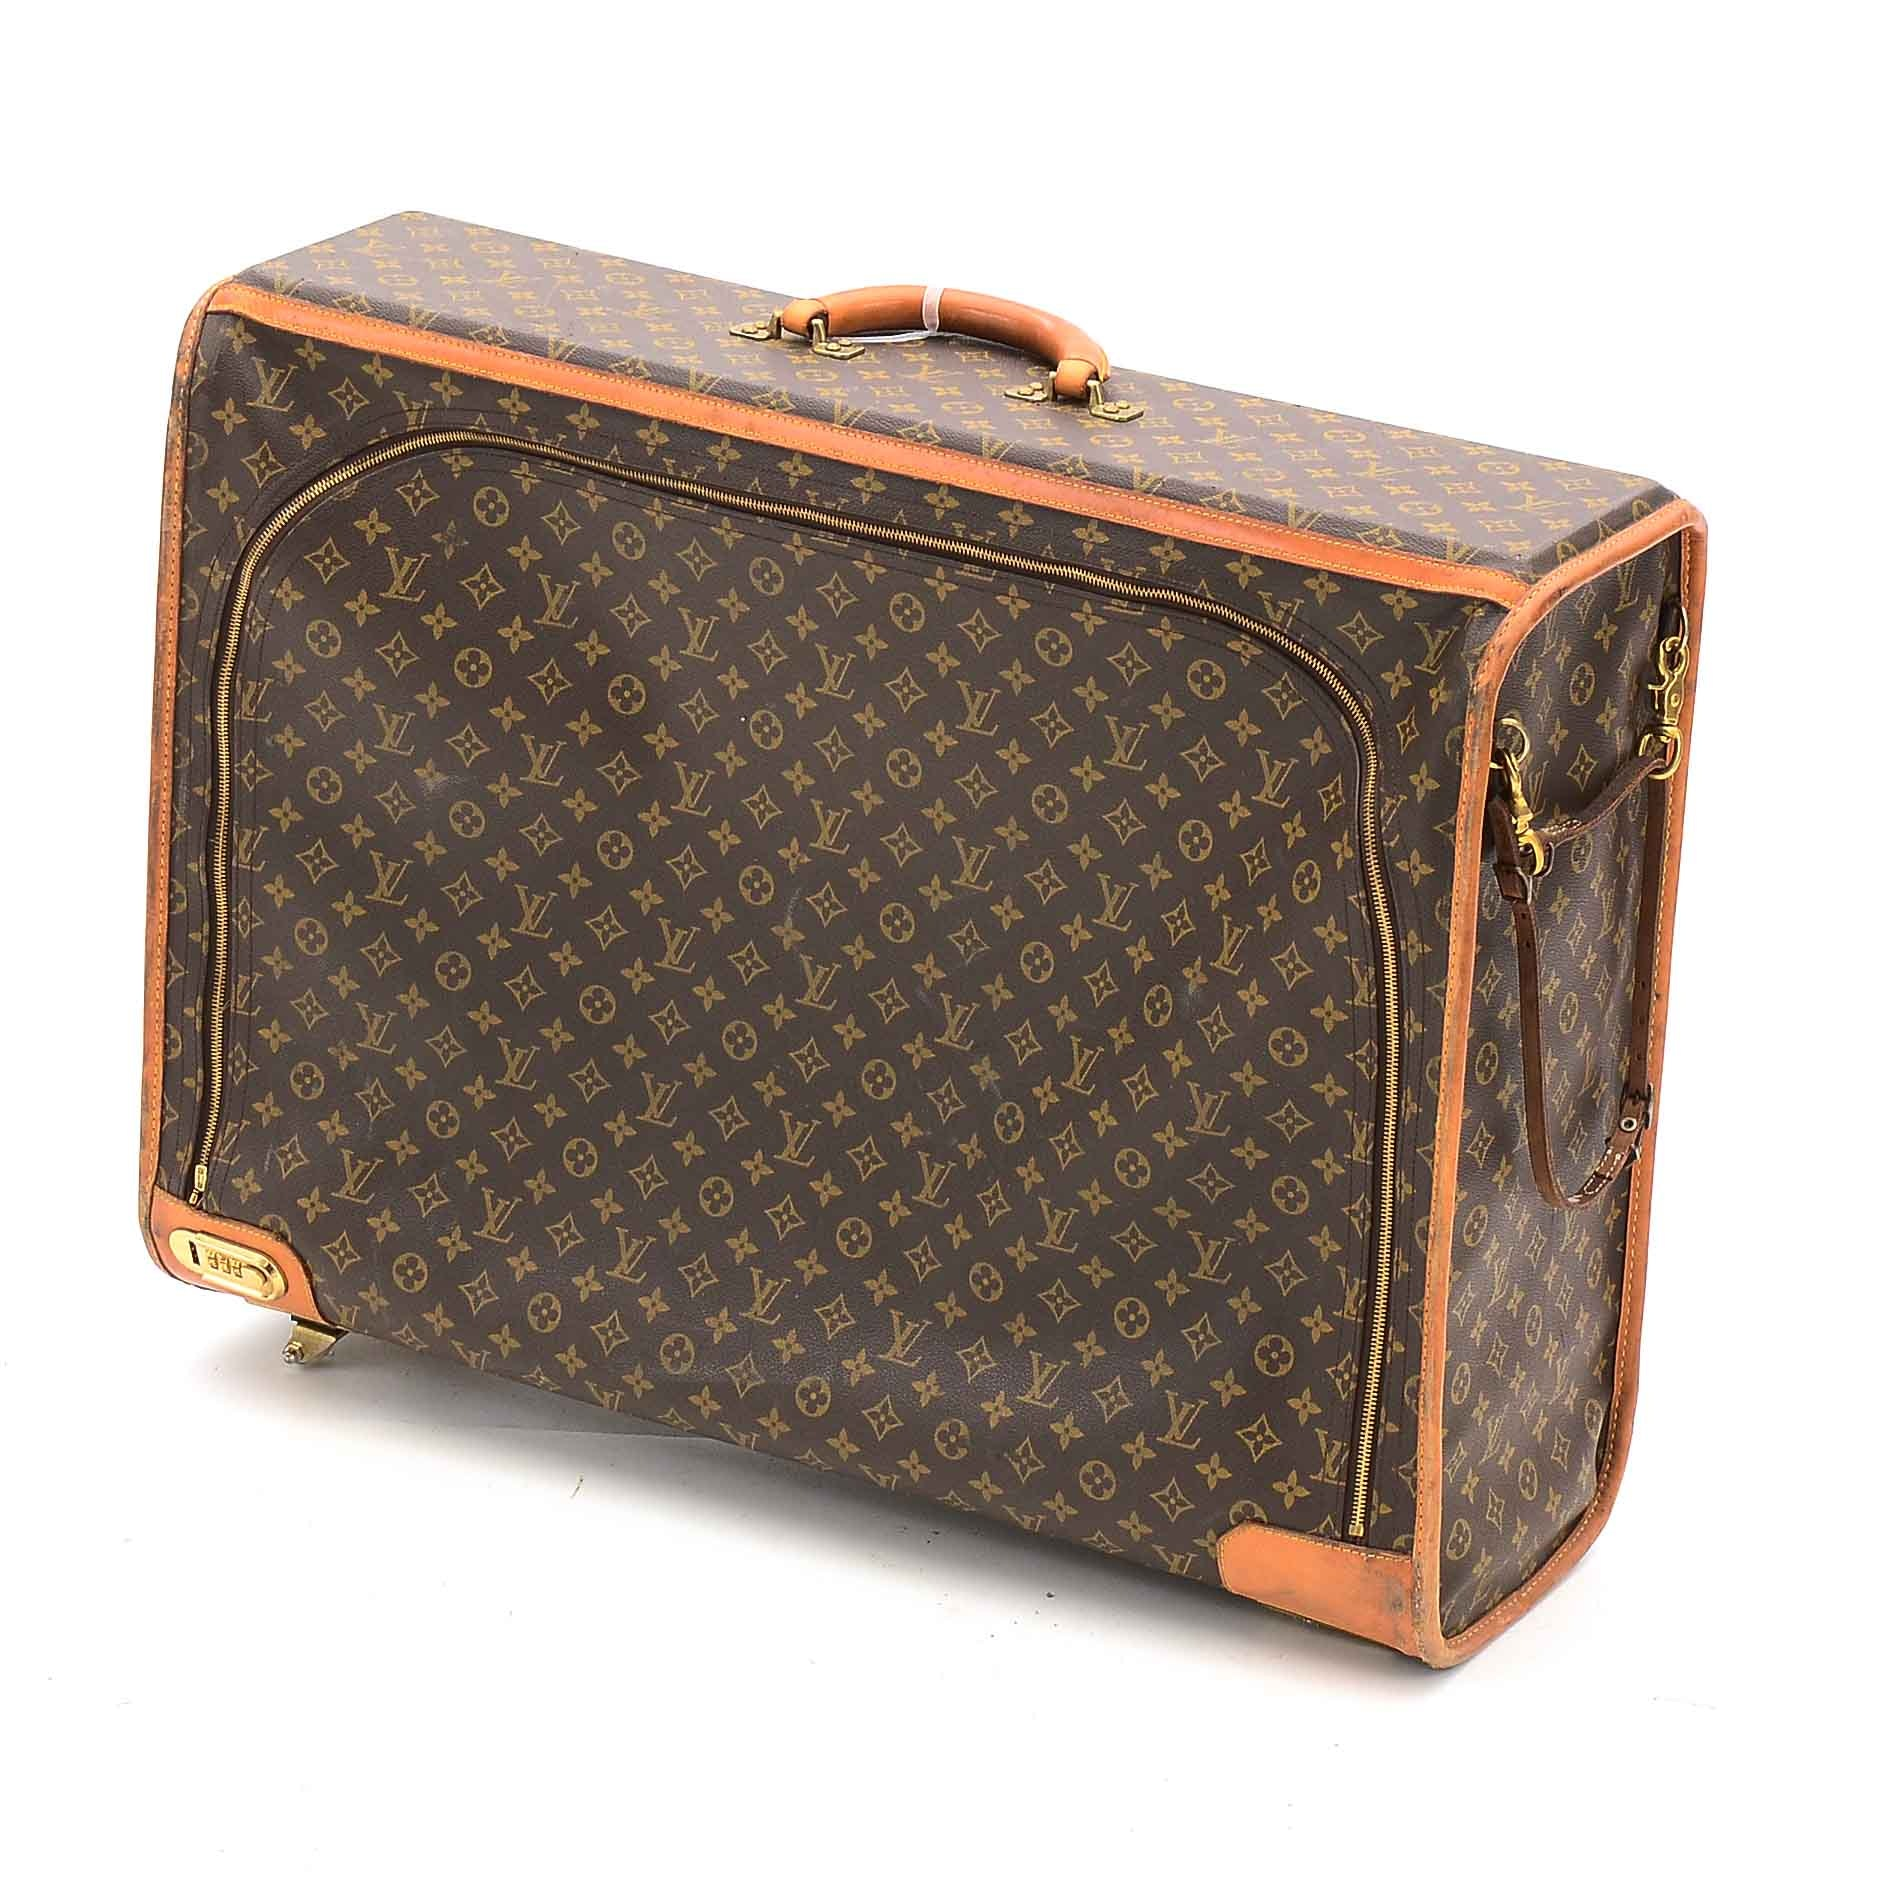 Vintage Louis Vuitton of Paris Monogram Canvas and Leather Pullman Suitcase